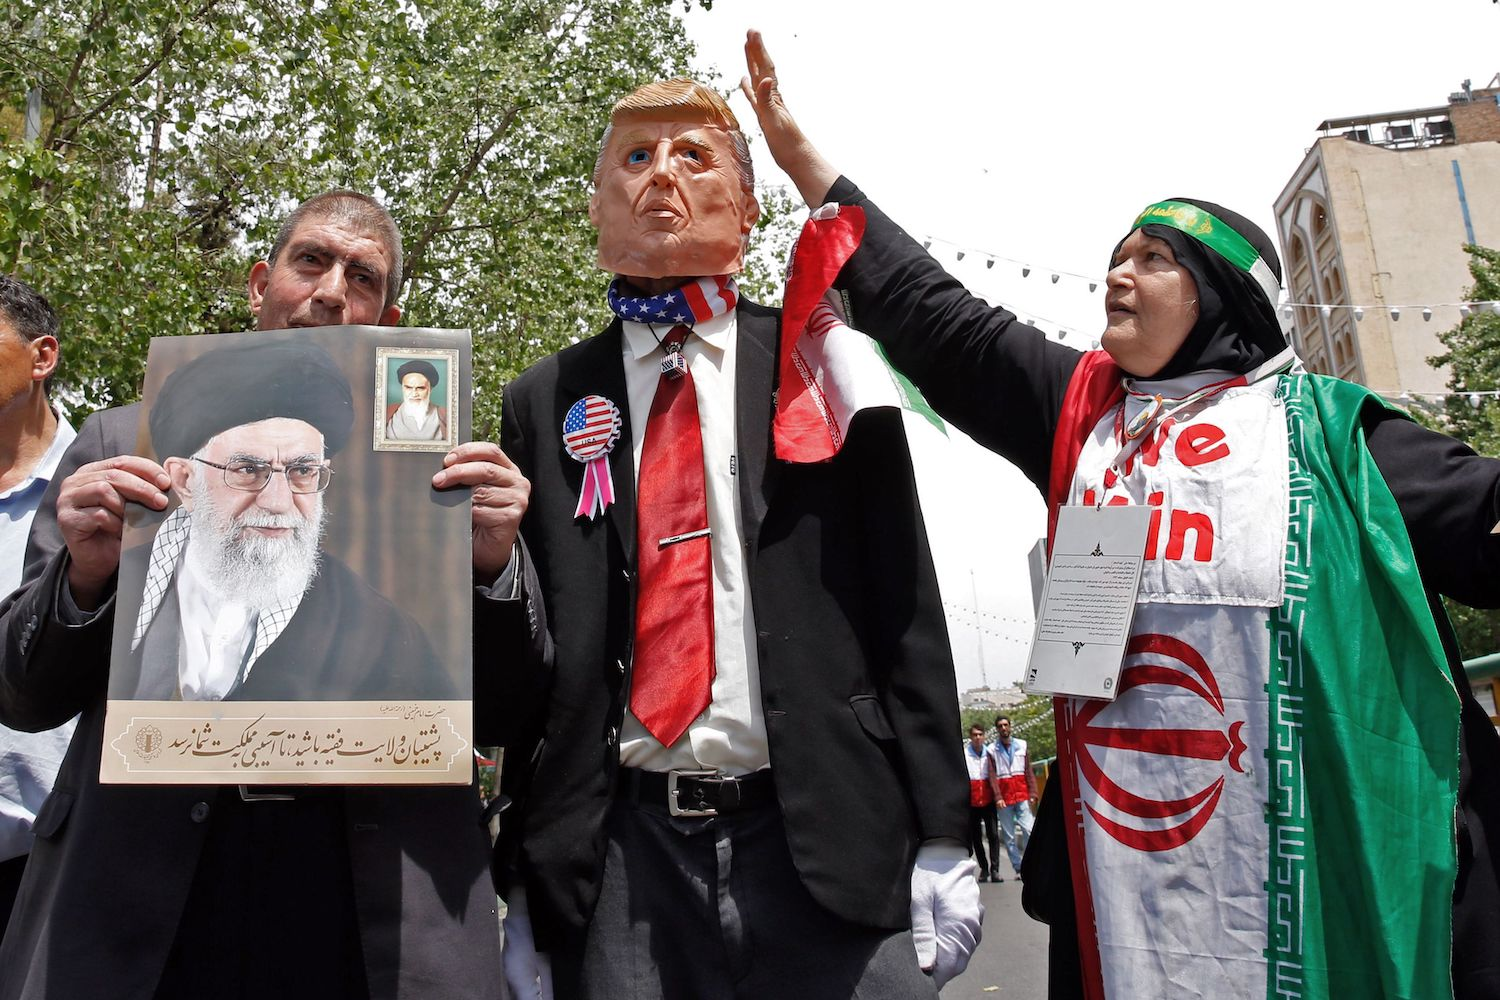 """Iranian demonstrators carry a portrait of Iran's Supreme Leader Ayatollah Ali Khamenei and an effigy of US President Donald Trump during a rally in the capital Tehran, on May 10 2019. - Iranian foreign minister blamed the EU for the decline of Tehran's nuclear accord with world powers and insisted the bloc """"should uphold"""" its obligations under the pact in which Iran agreed to curb its nuclear ambitions in return for sanctions relief. US President Donald Trump pulled the United States out of the agreement in May of last year and reinstated unilateral economic sanctions. (Photo by STR / AFP)        (Photo credit should read STR/AFP/Getty Images)"""